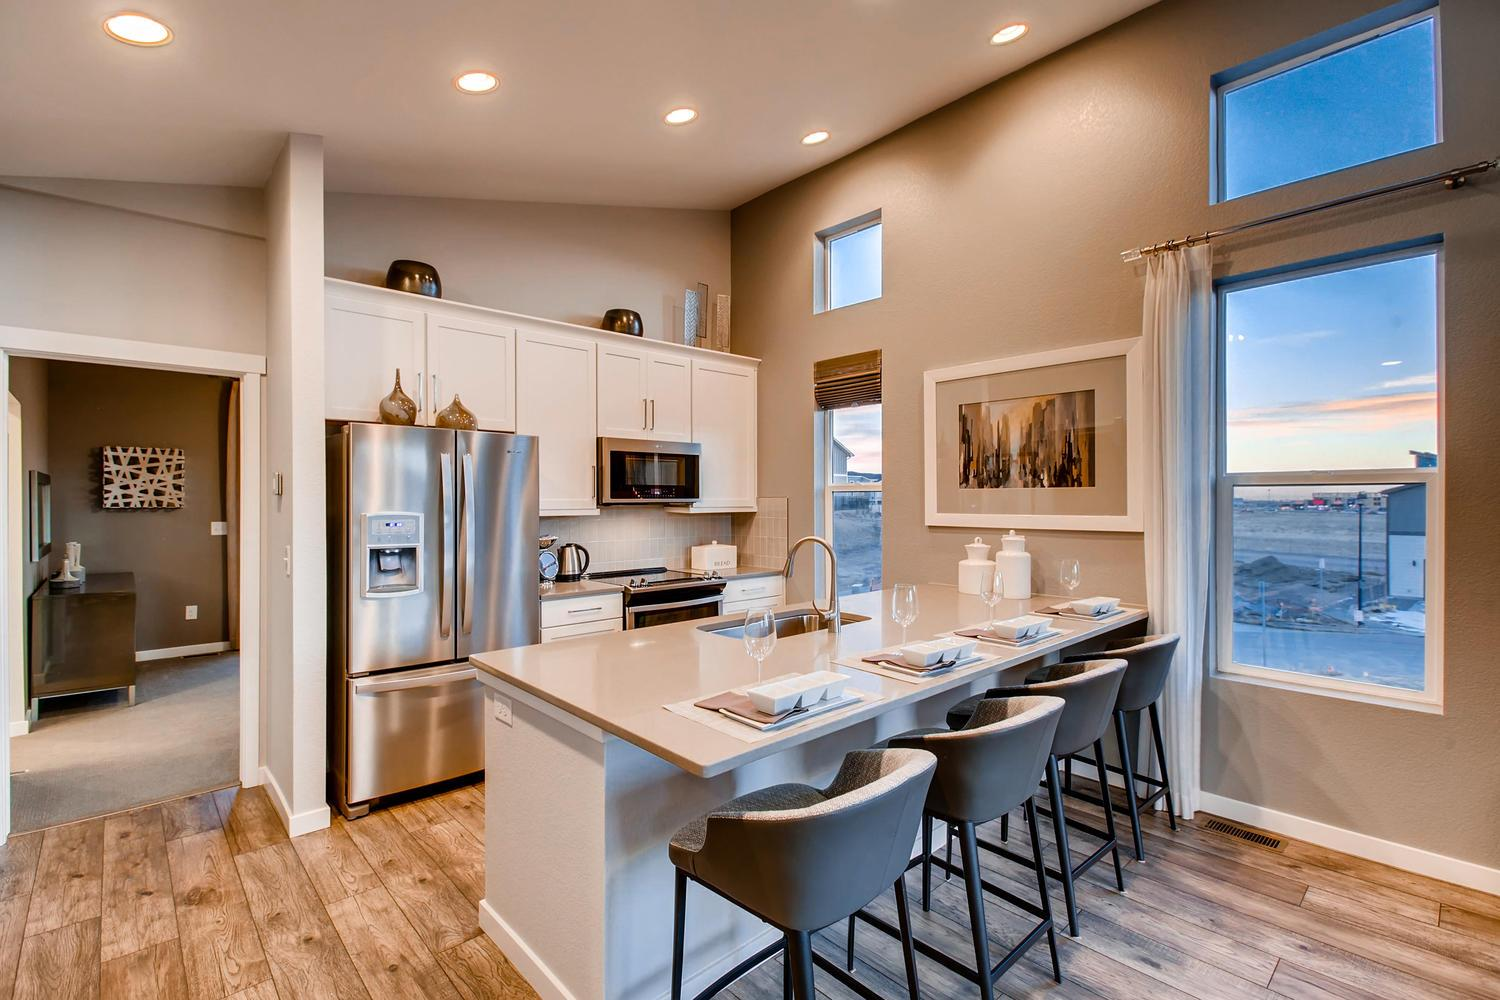 Kitchen featured in the 220 By Classic Homes in Colorado Springs, CO